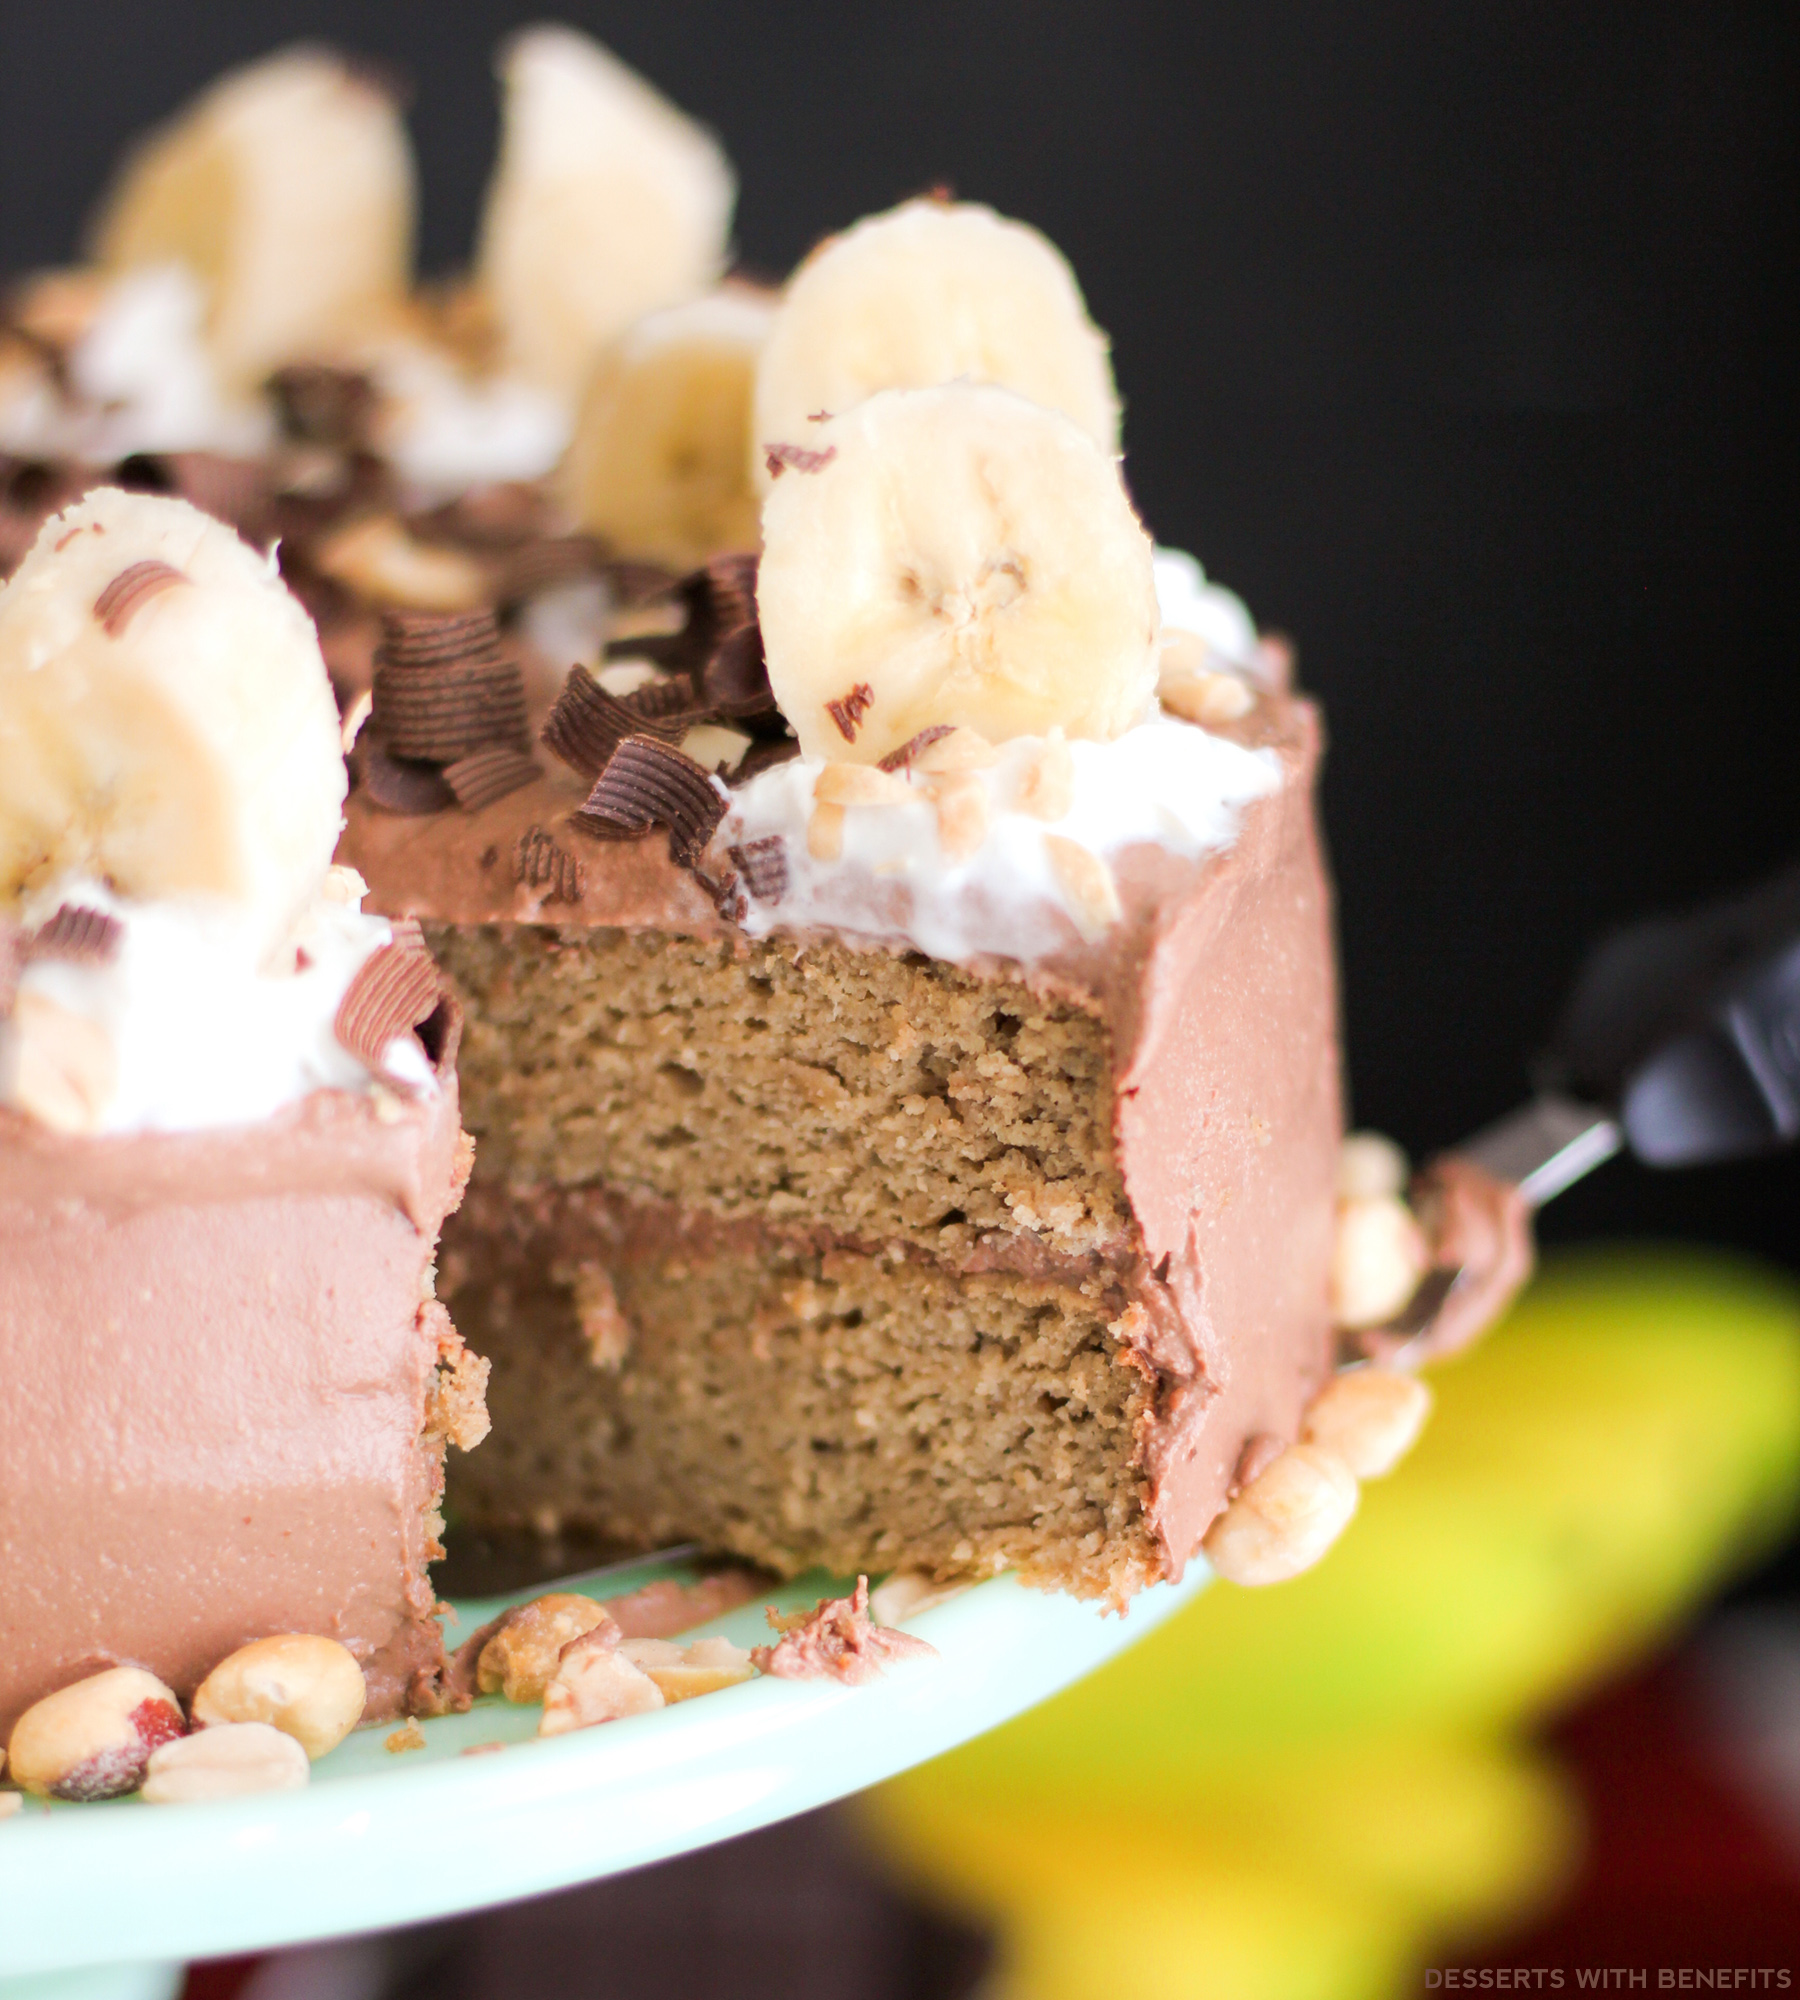 Healthy Chunky Monkey Cake: Peanut Butter Banana Cake with Chocolate Peanut Butter Frosting (refined sugar free, high protein, high fiber, gluten free) -- Healthy Dessert Recipes at Desserts with Benefits